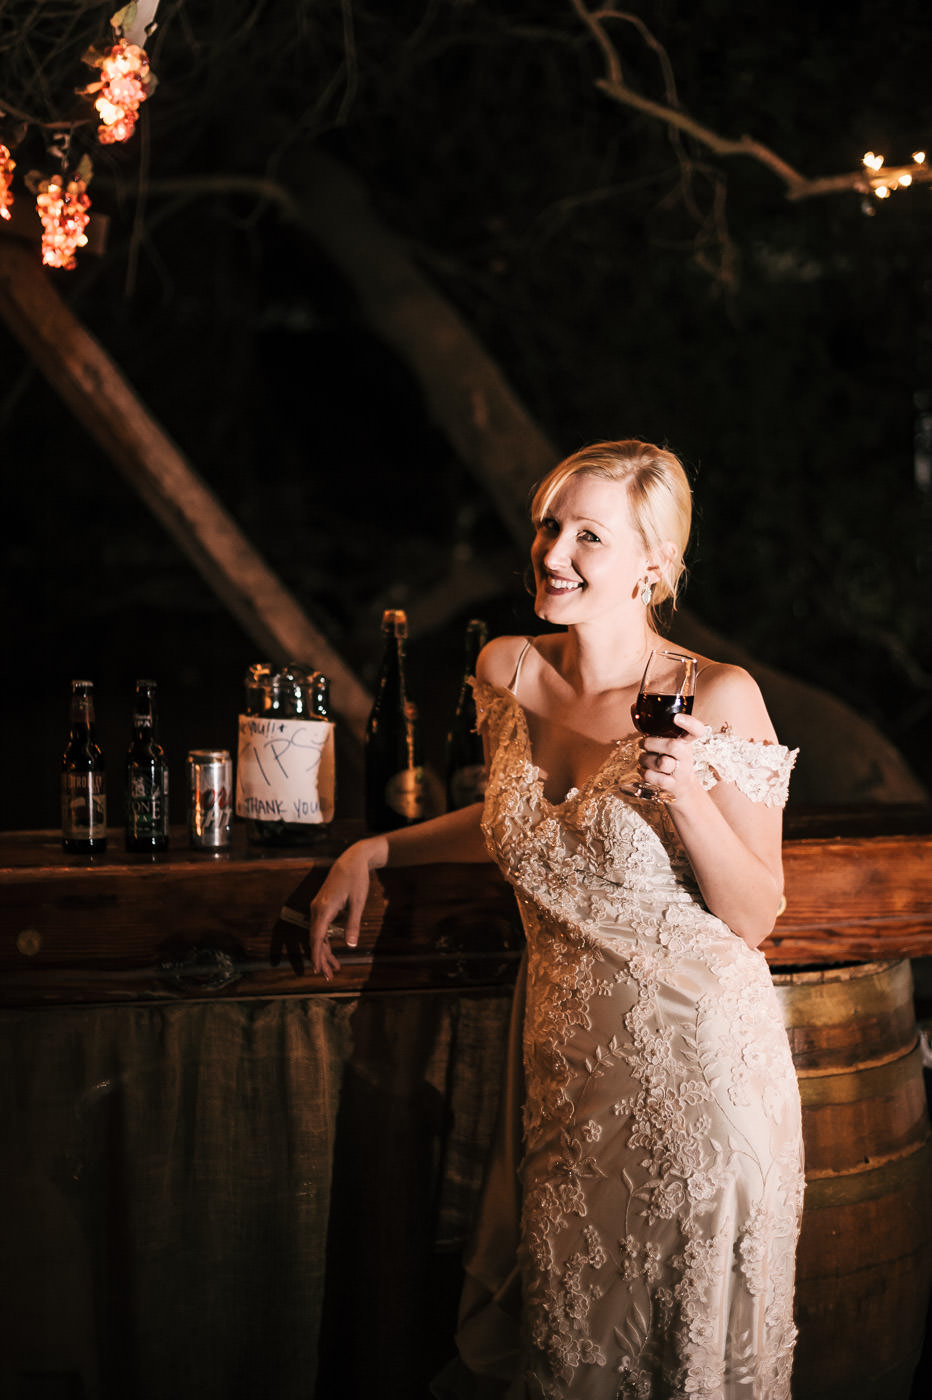 bride hits the bar for some refreshments after a long but beautiful wedding